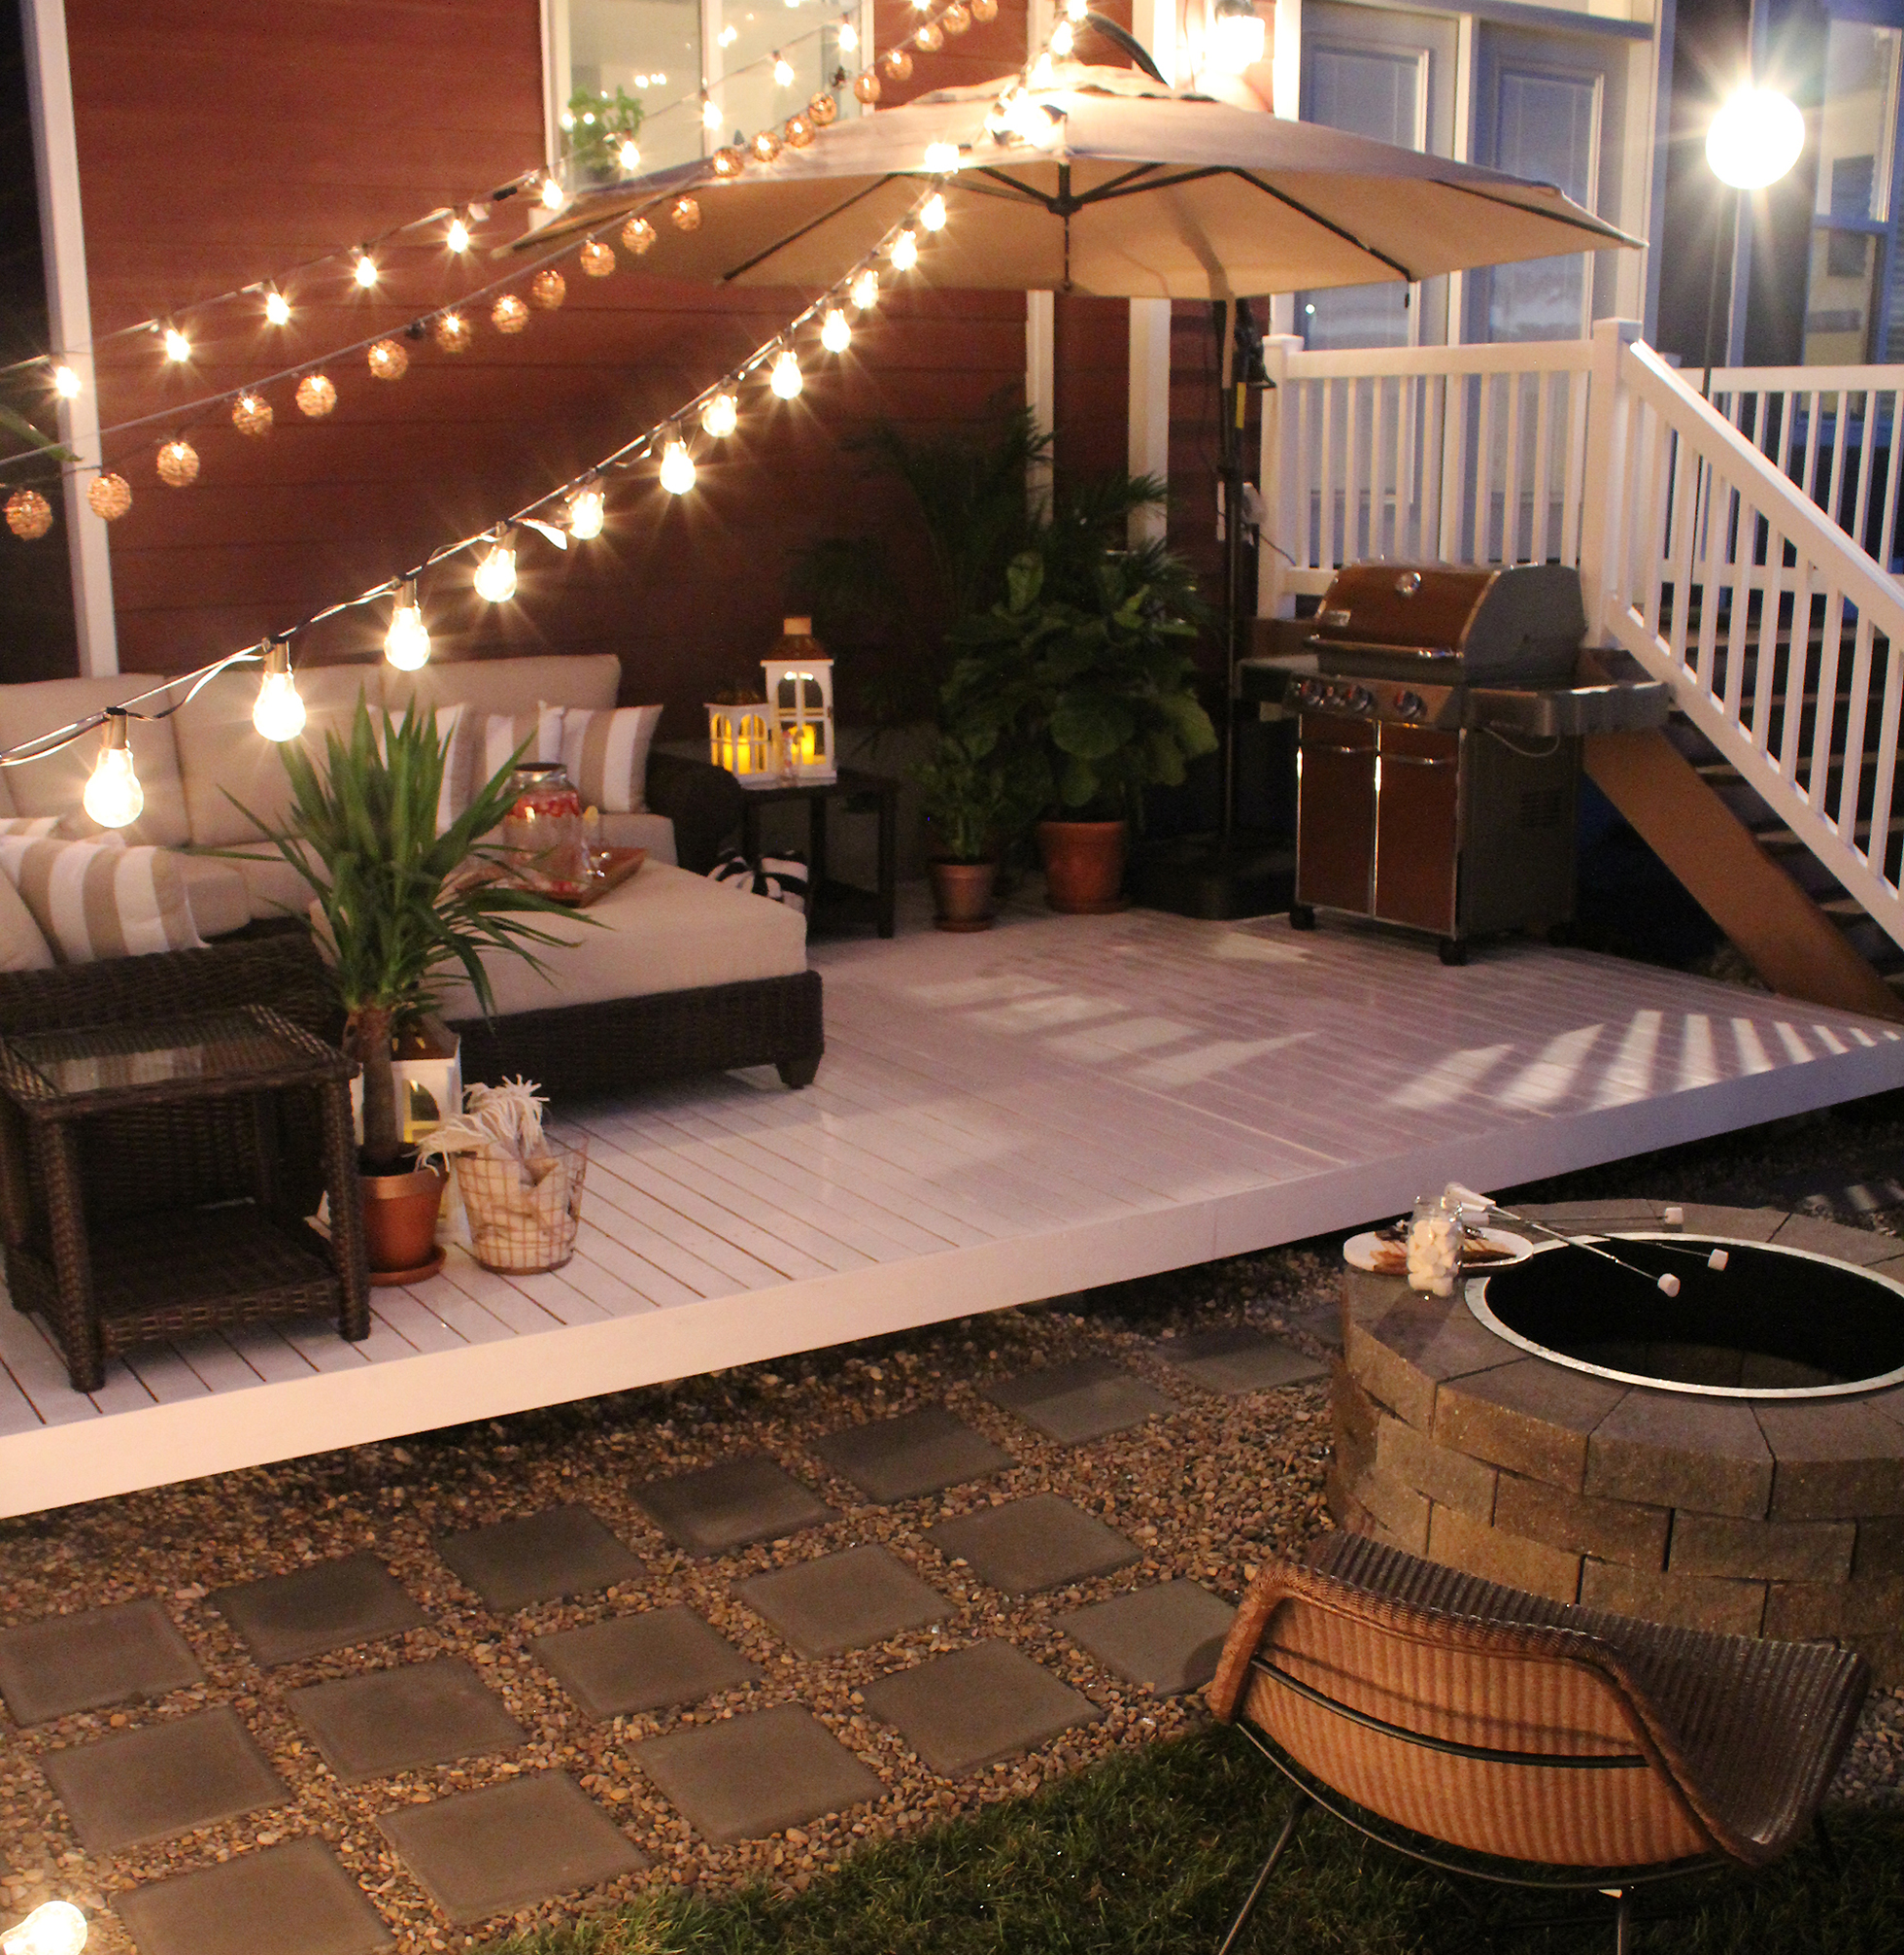 A light-colored deck with patio furniture at night